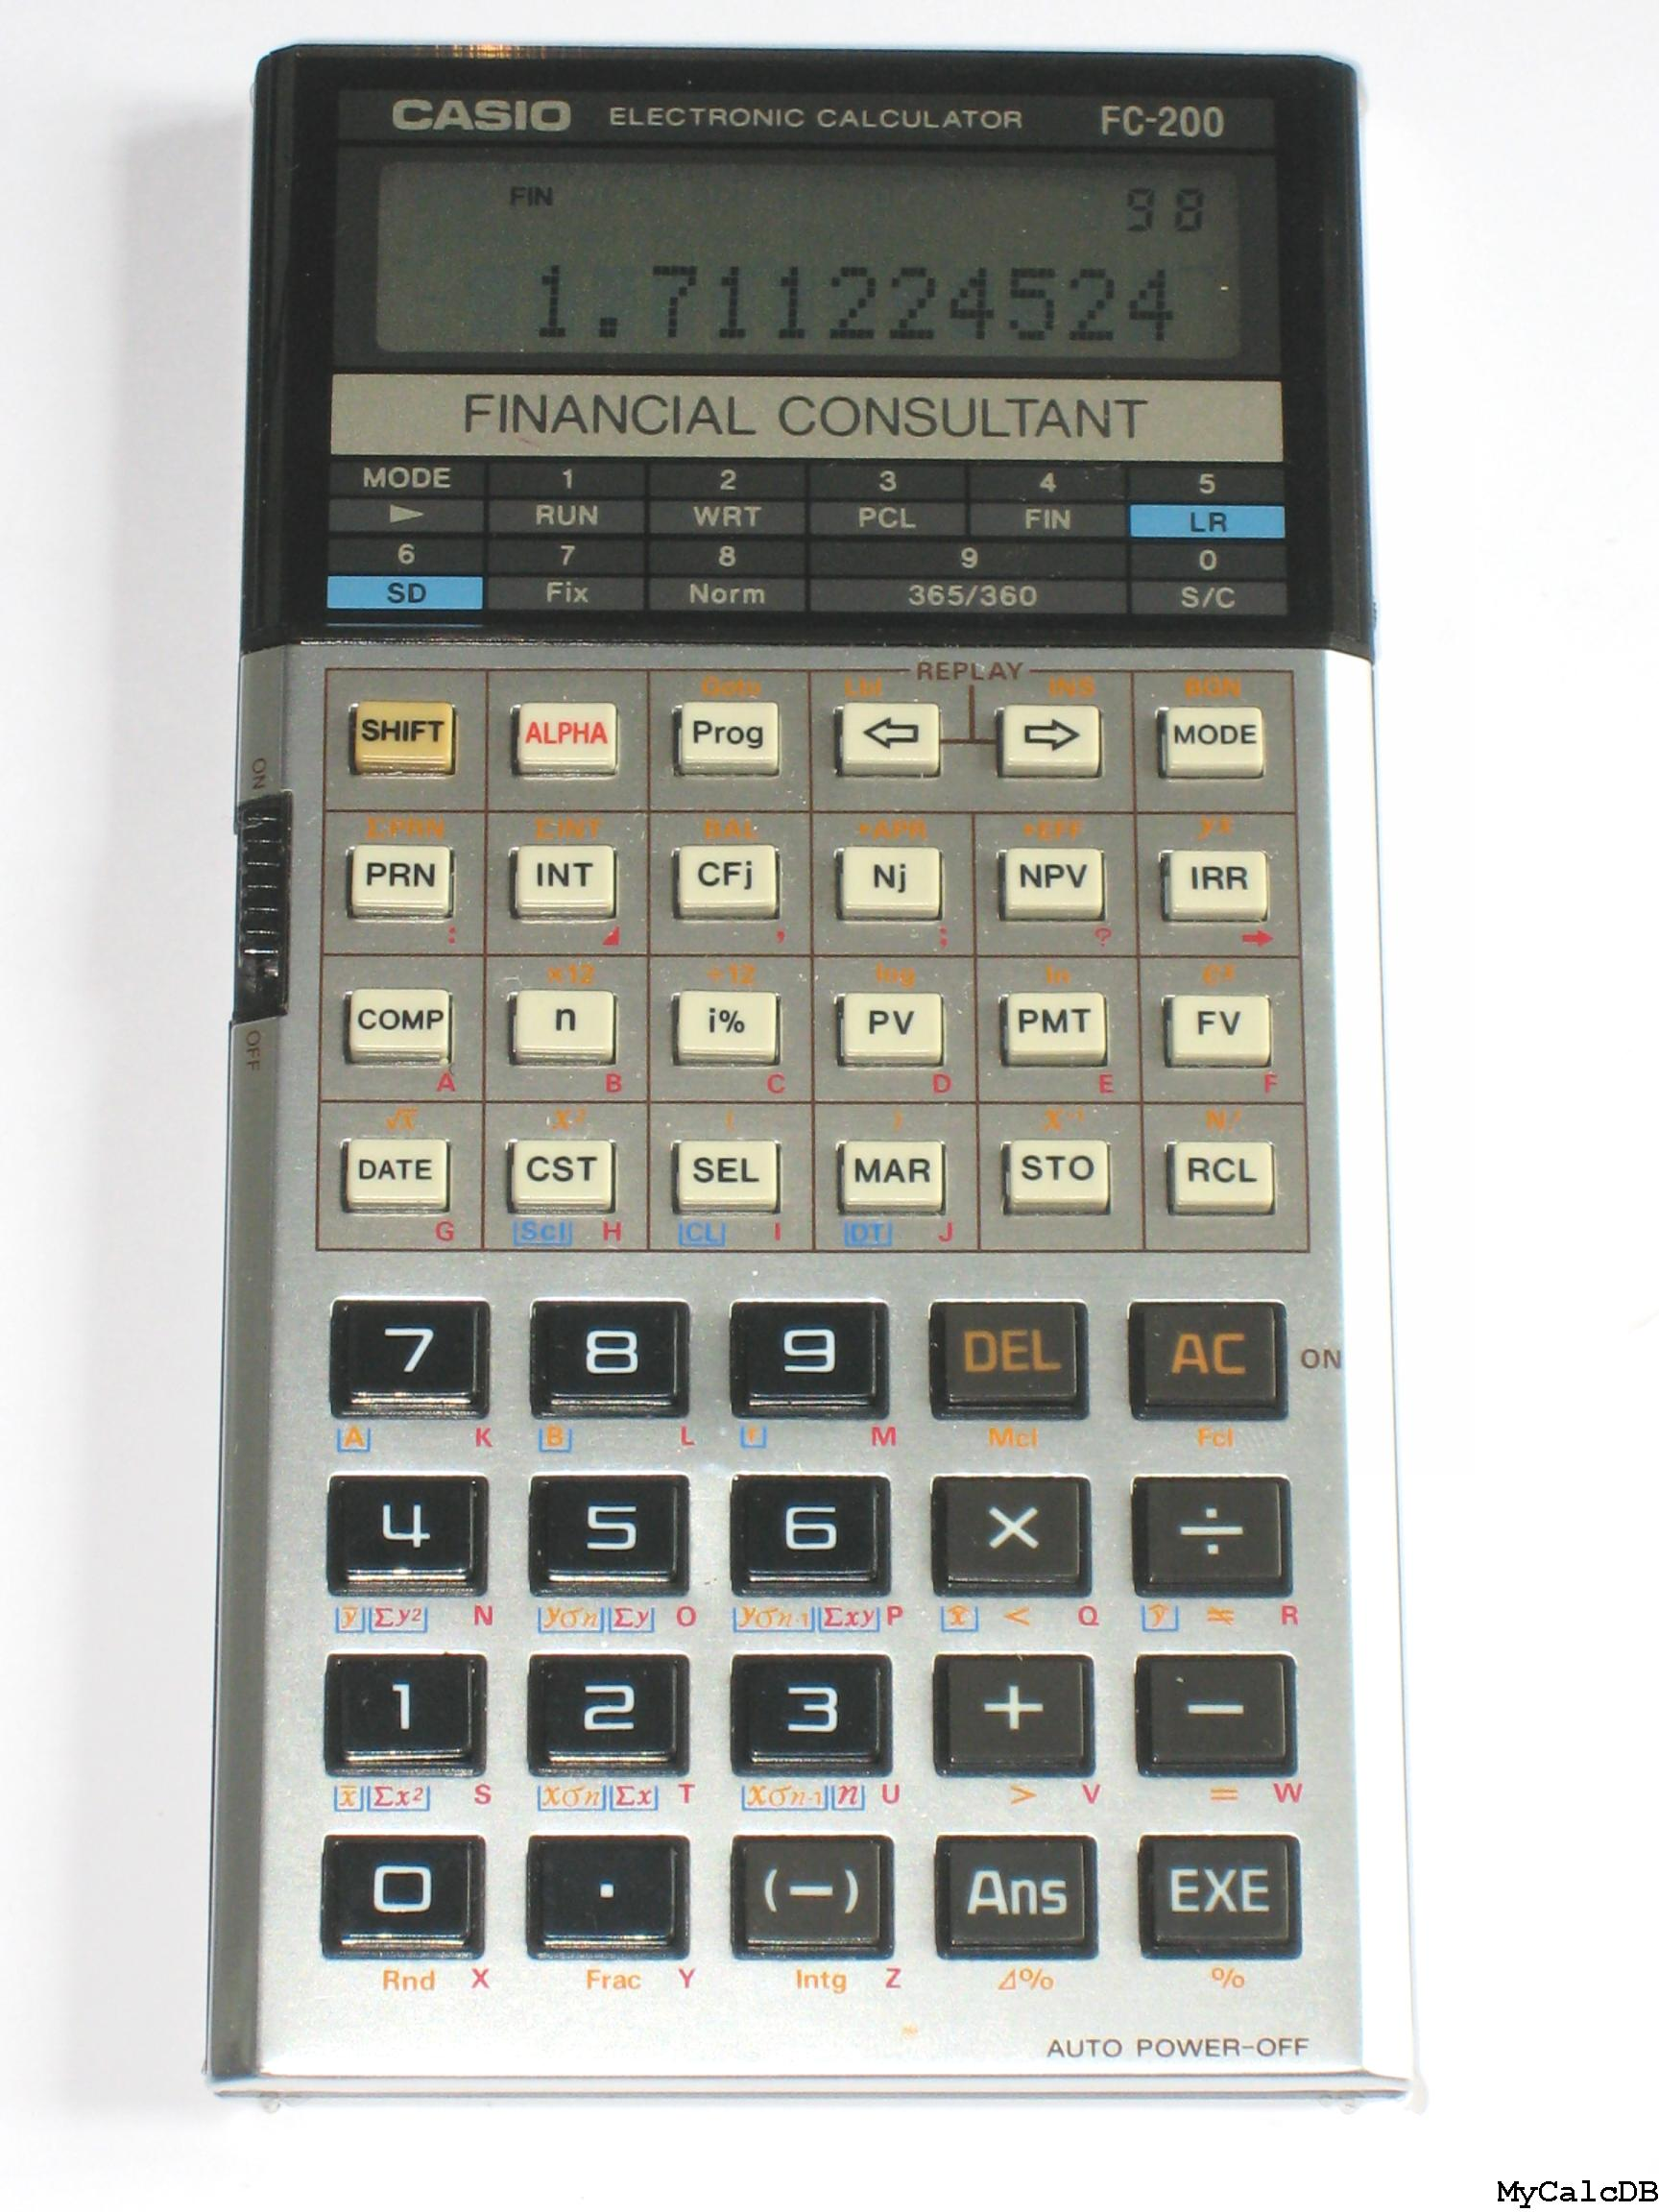 How to use calculator casio fc 200v part 1 youtube.